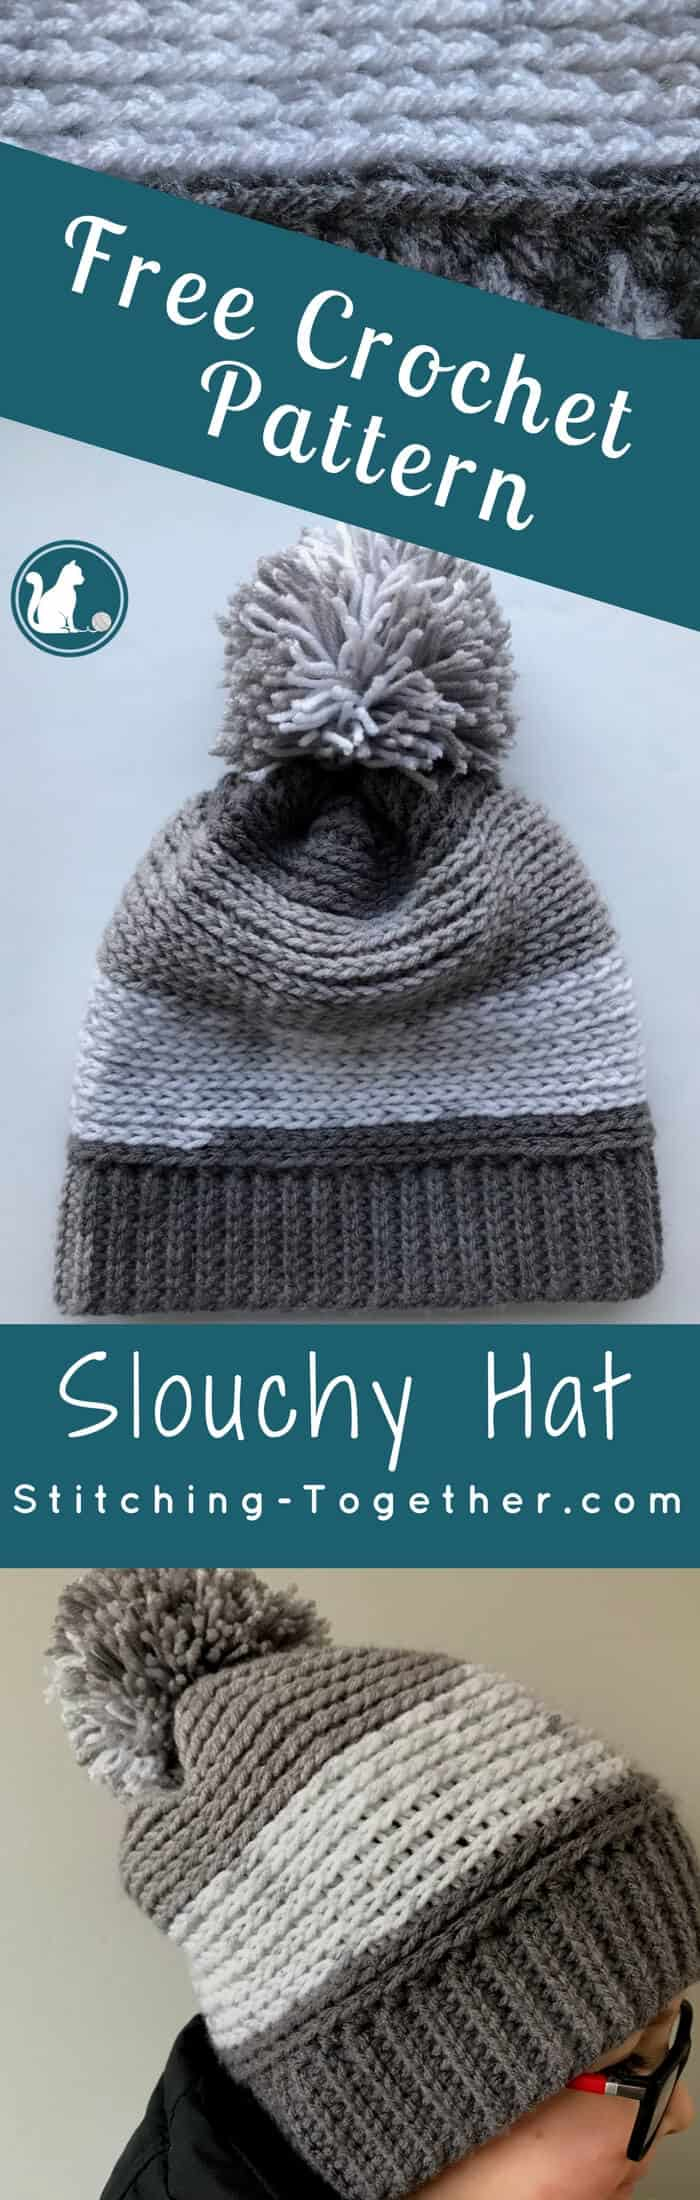 7566392a0aa Chec out this free pattern for a crochet slouchy hat perfect for kids! Super  easy